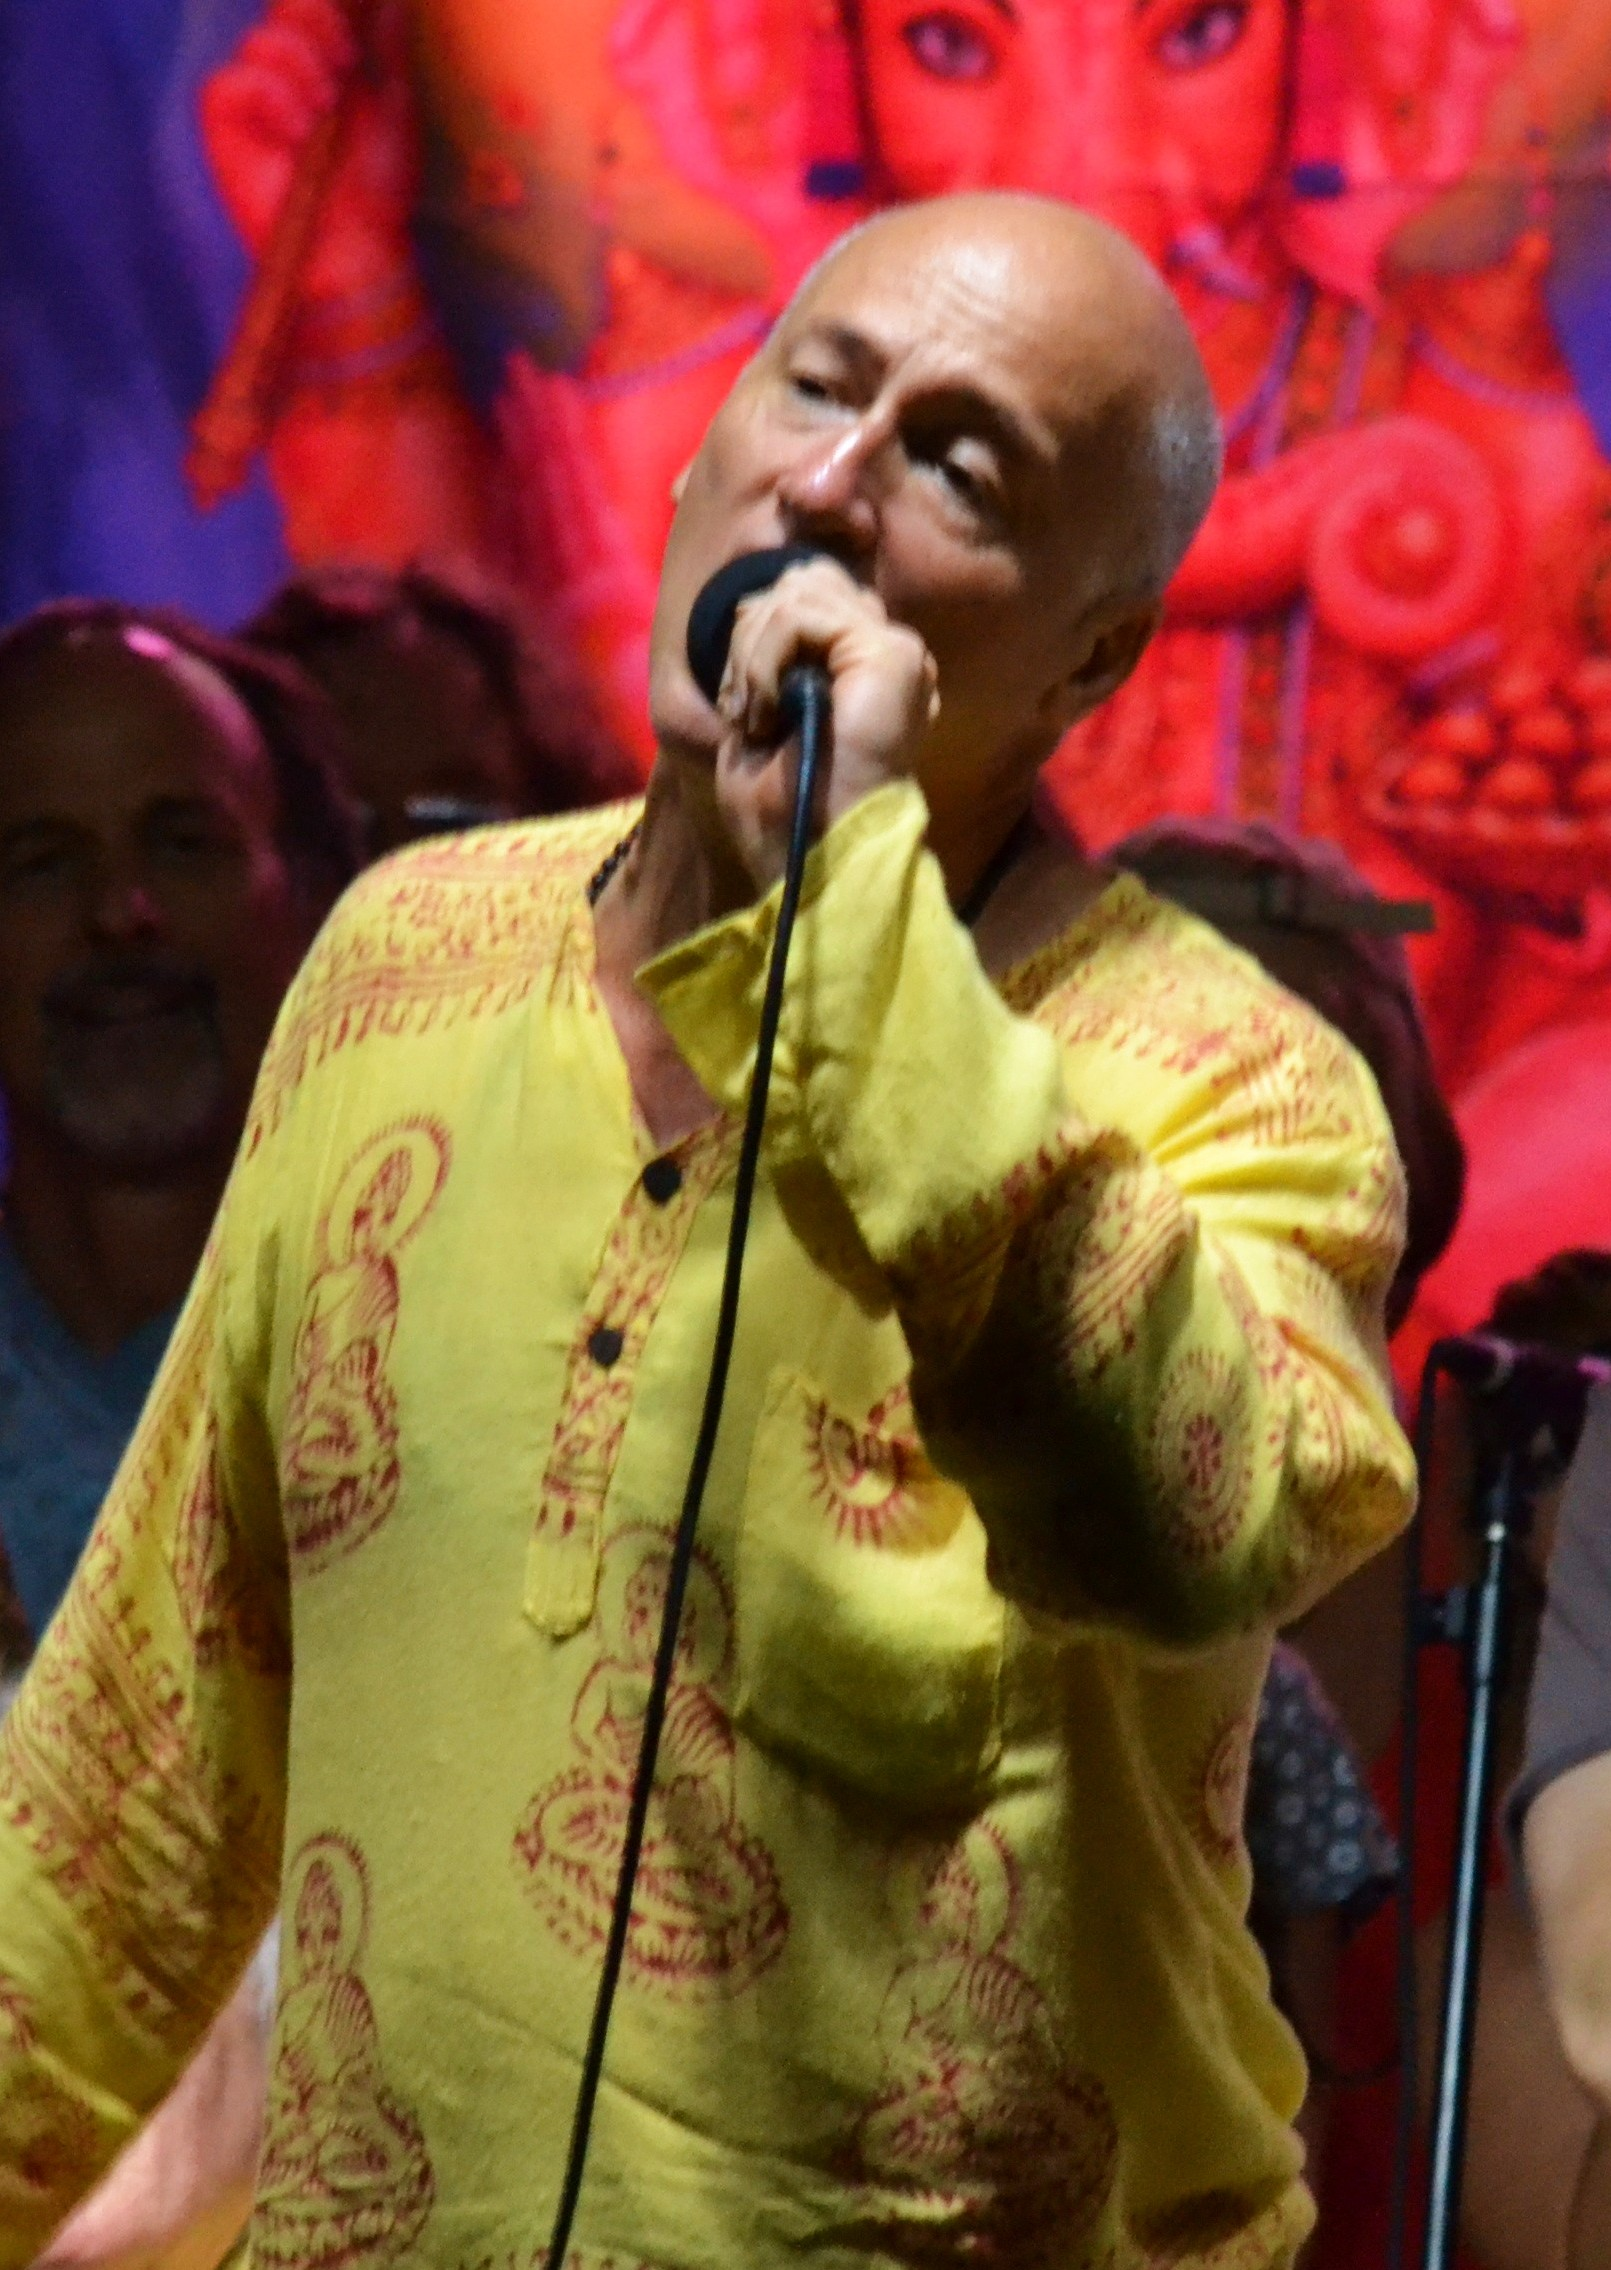 Thumbnail image for CROWDFUND THIS!  'Sound Colorist' Jim Beckwith's Debut Chant CD Fuses Kirtan With Original Lyrics (Interview, Photos)